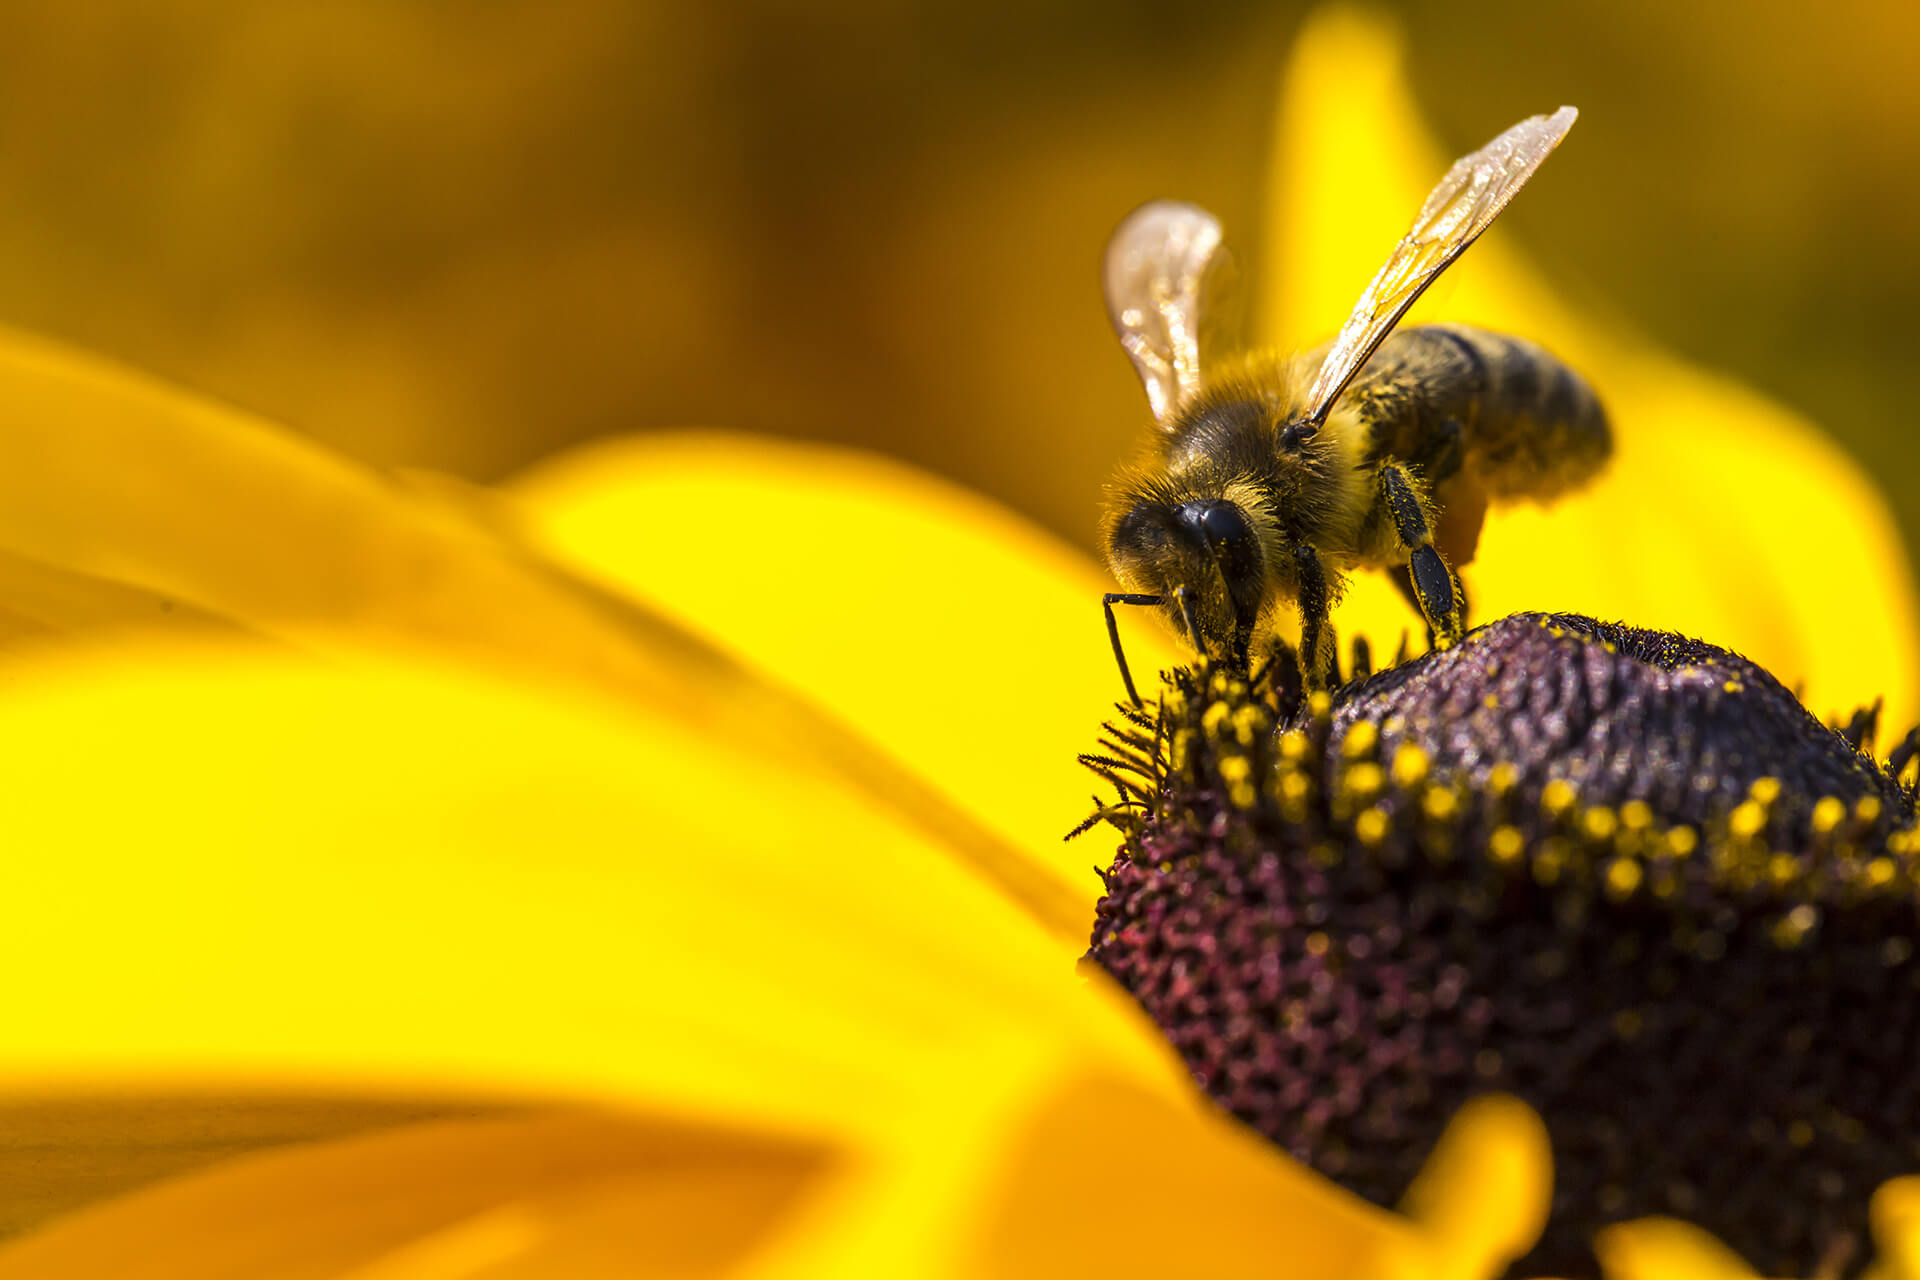 THE FUTURE OF BEEKEEPING IS IN THE HANDS OF THE YOUNG GENERATION